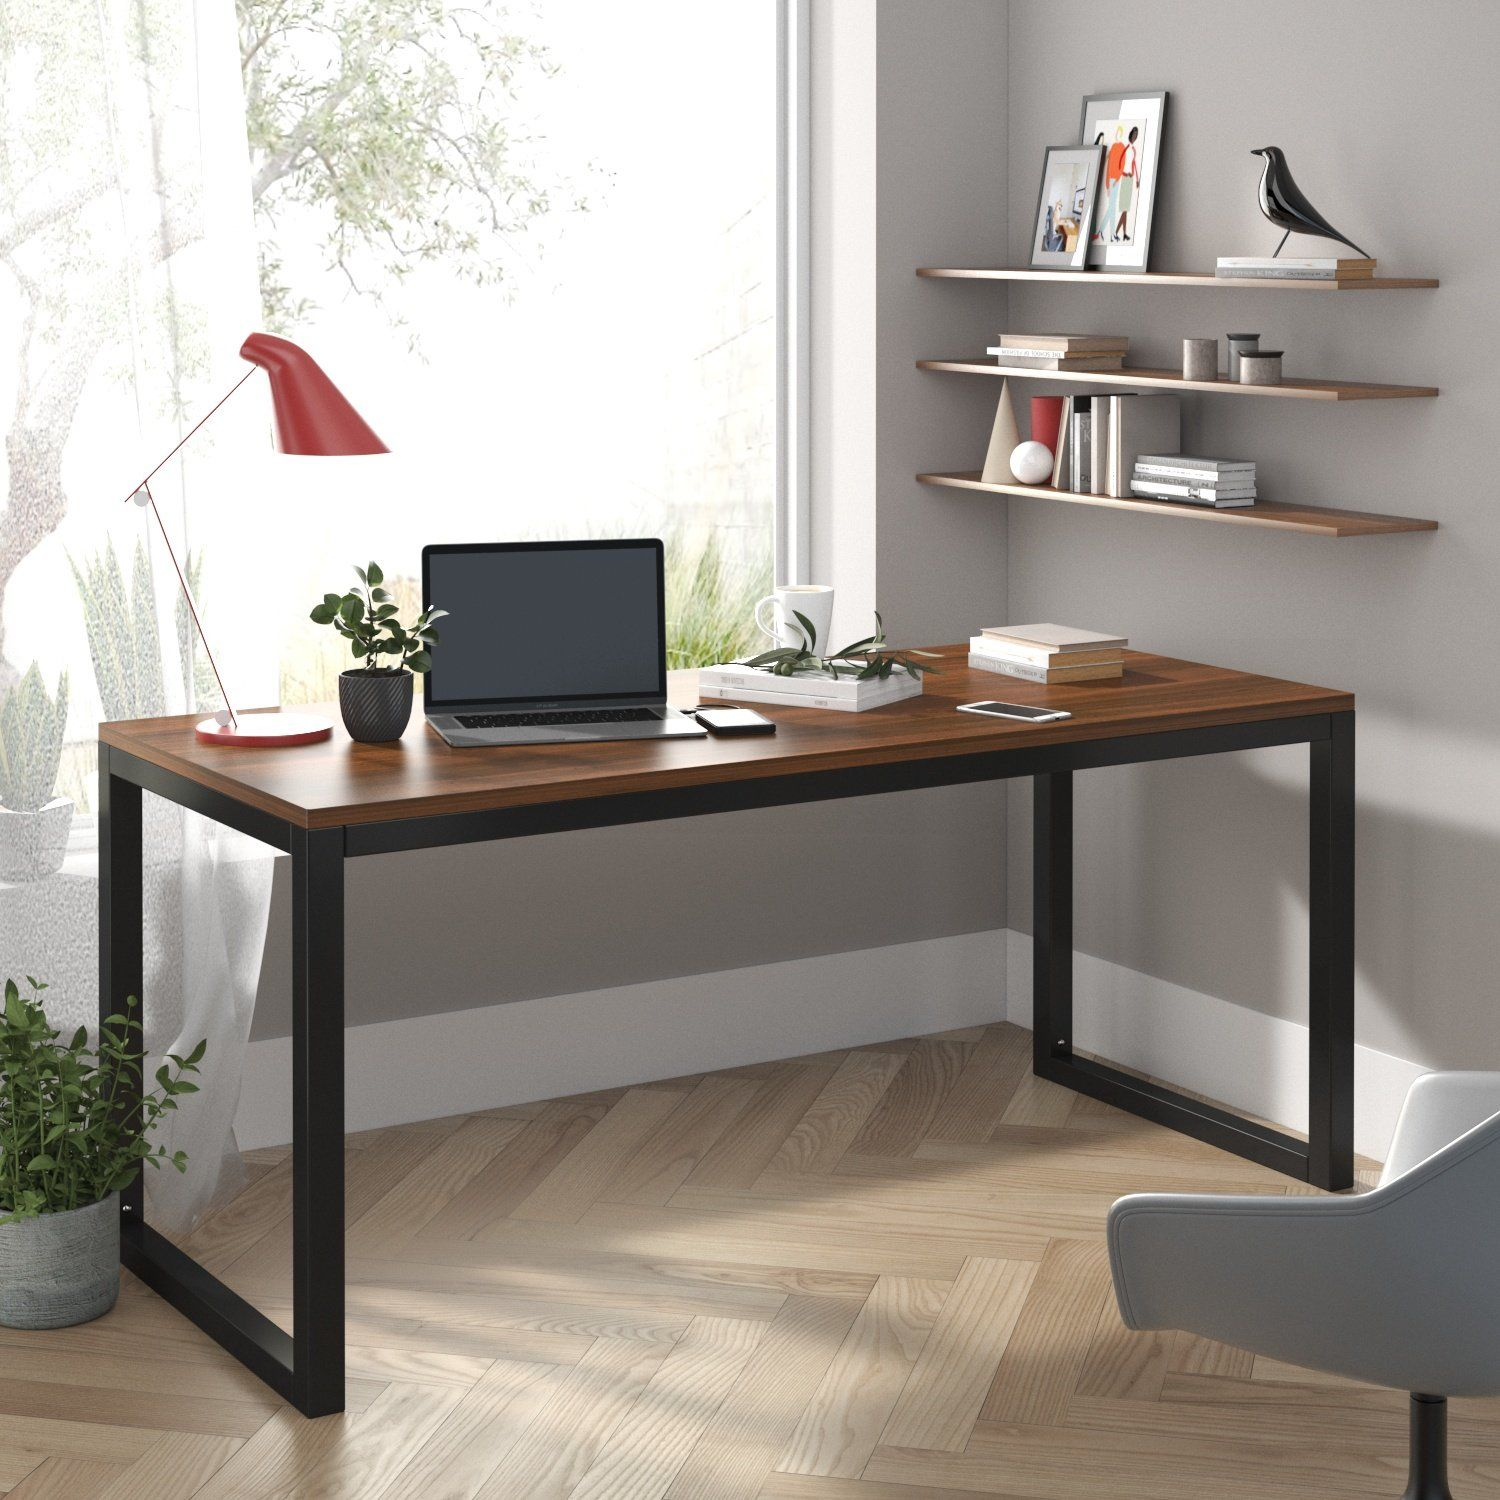 Computer Desk, Modern Writing Gaming Desk for Home Office, Small Wood Table Top Workstation, Rustic Simple Industrial Design - 45'' / Brown & Black